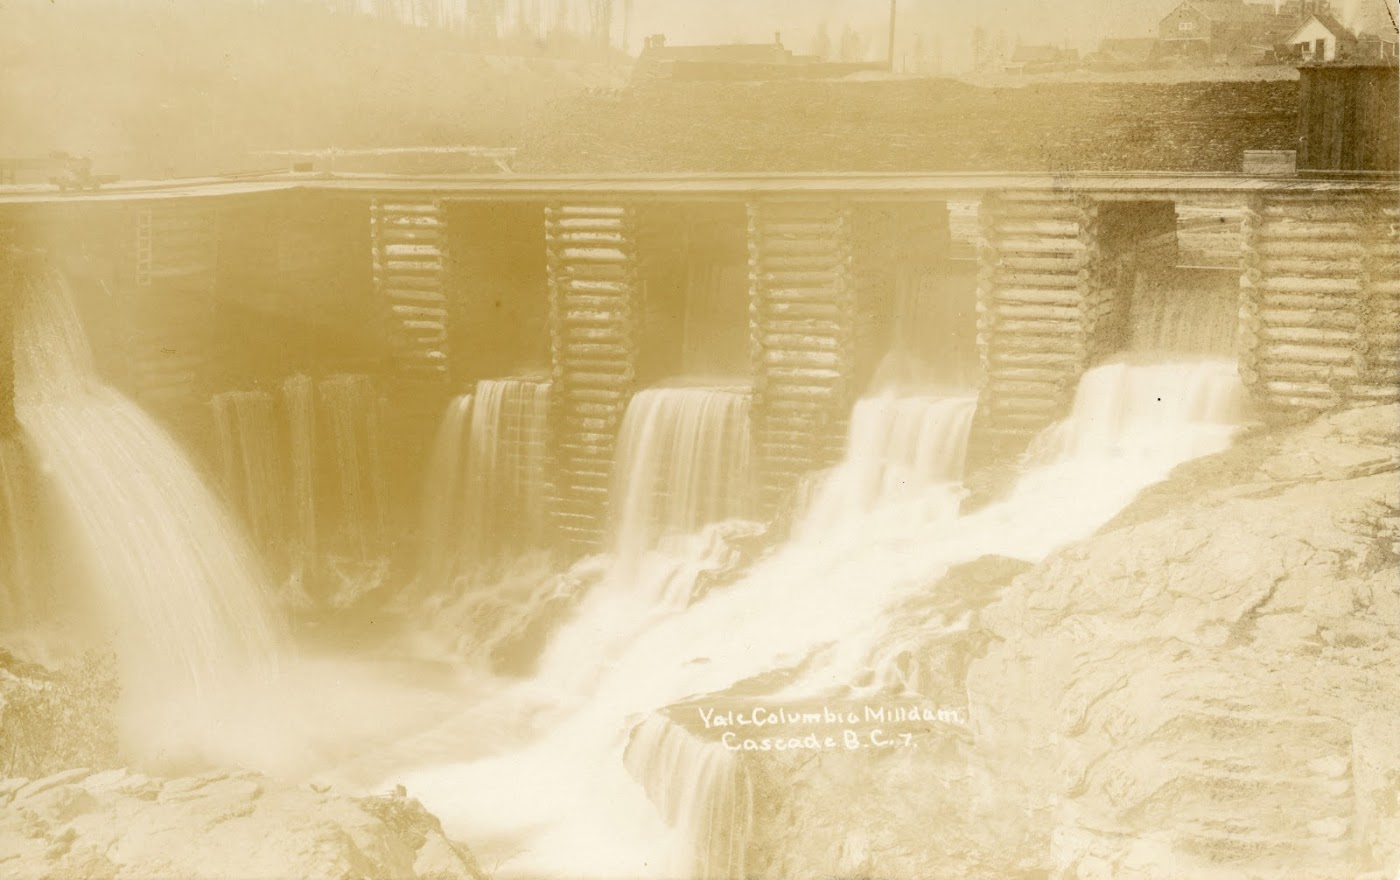 Photo 2318.0022: The Cascade Power House on the Kettle River. This photo was taken in 1920 when the dam was being operated by WKPL.